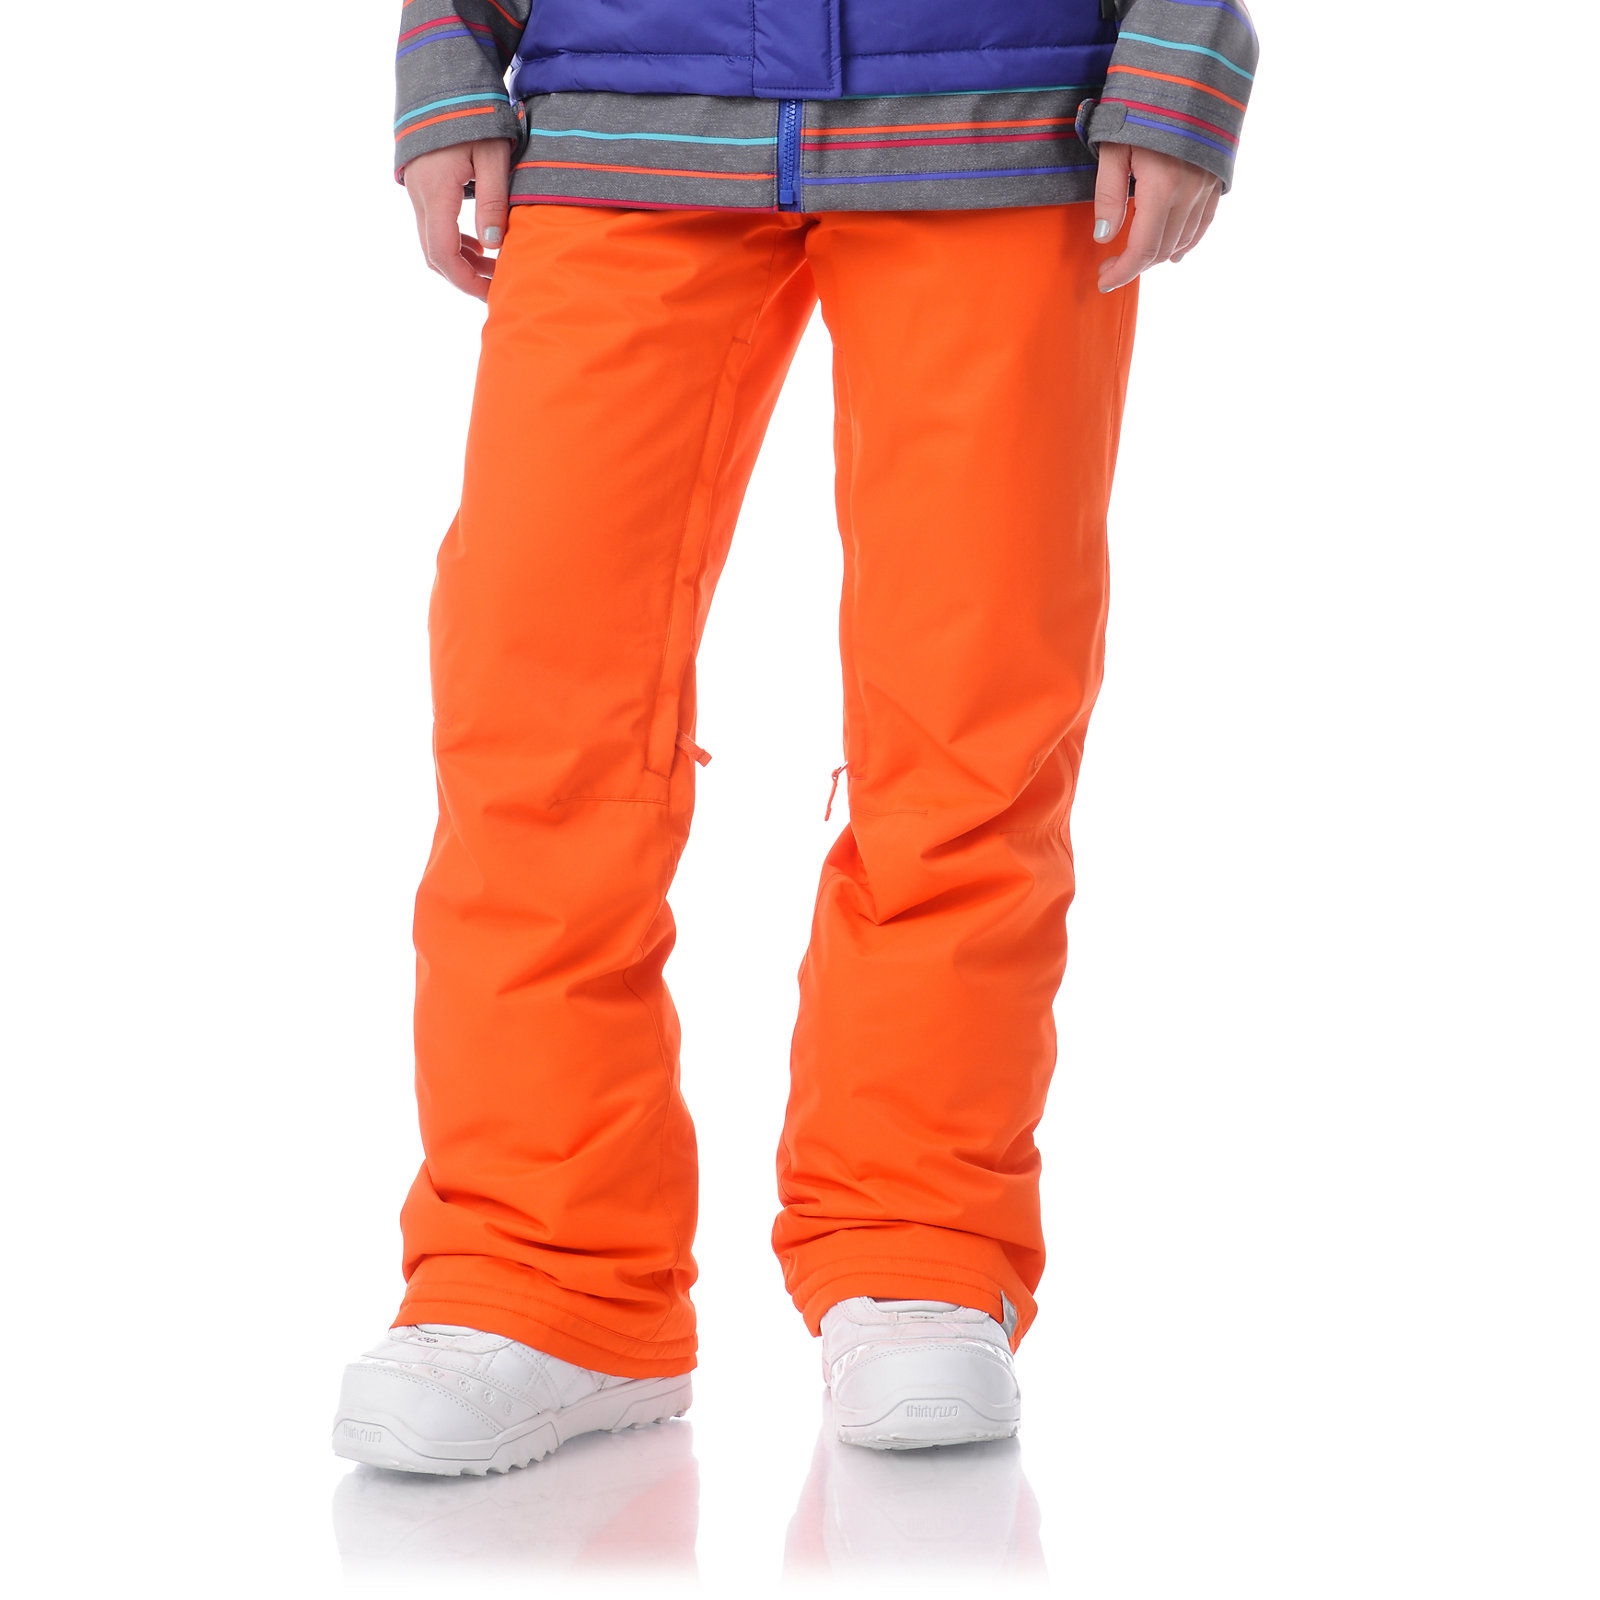 Snowboard Roxy Evolution Bright Orange 8K Girls Snowboard Pants